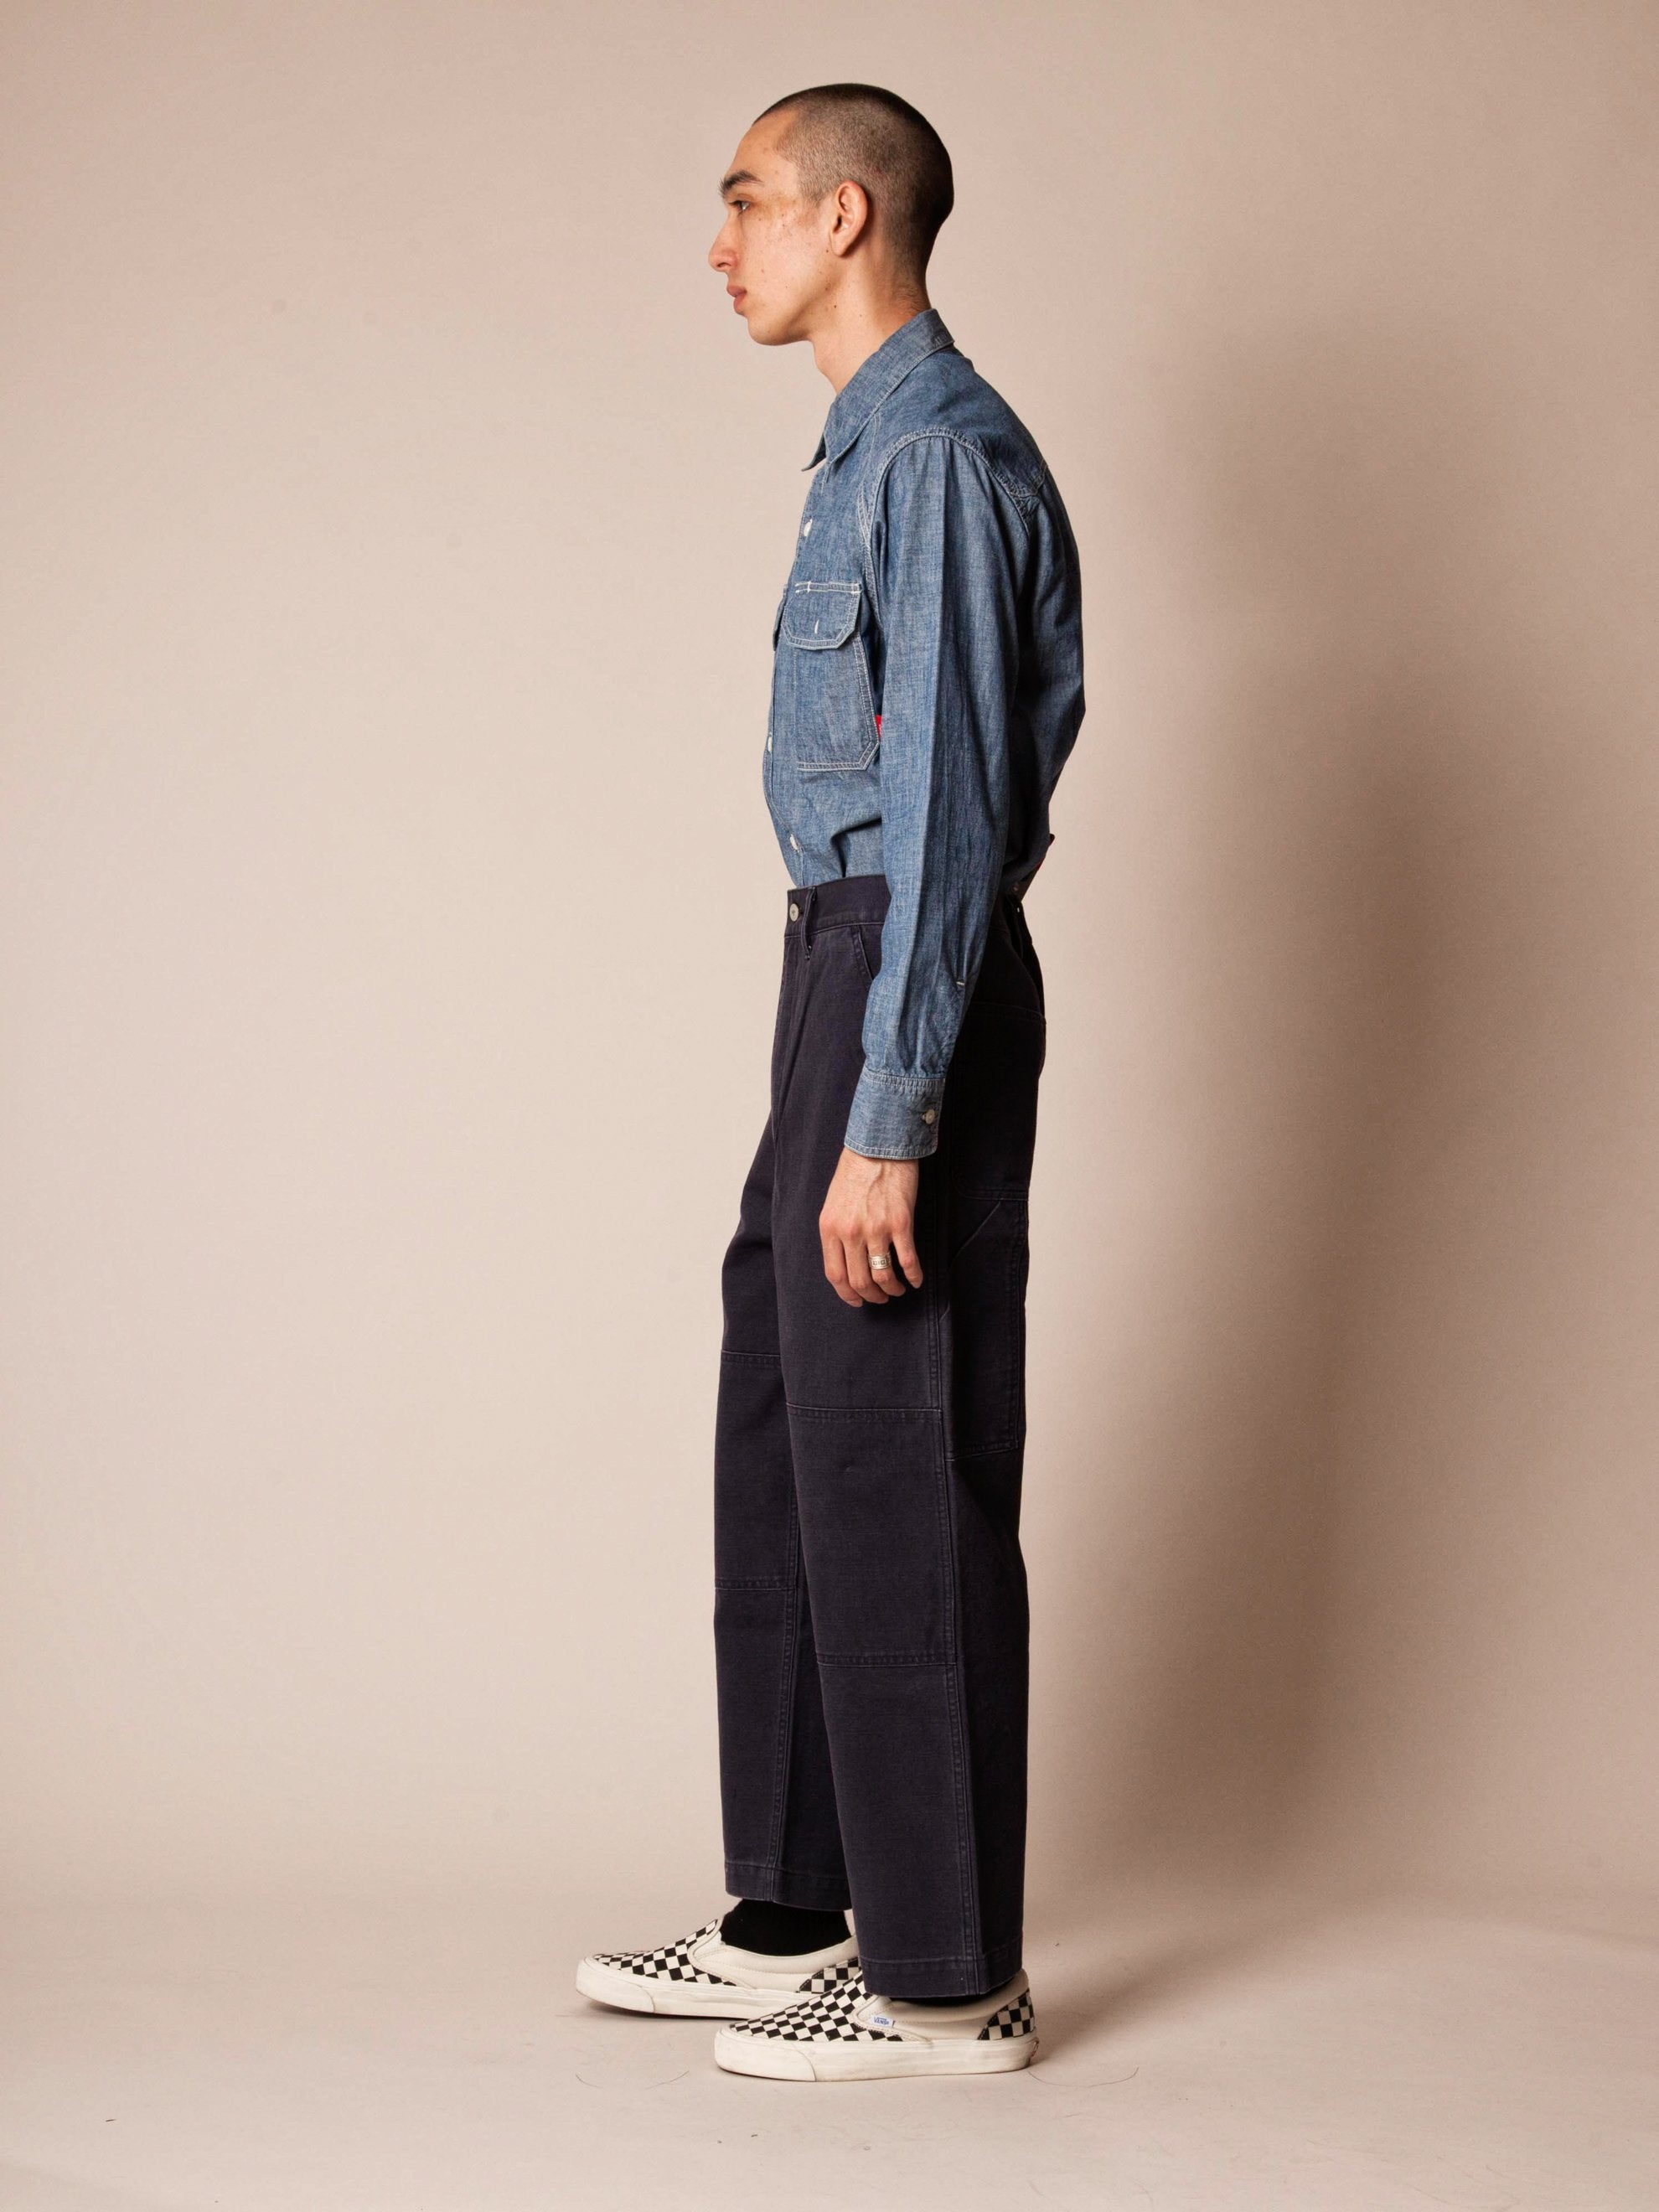 Olive Drab Armstrong Trousers (Duck) 7